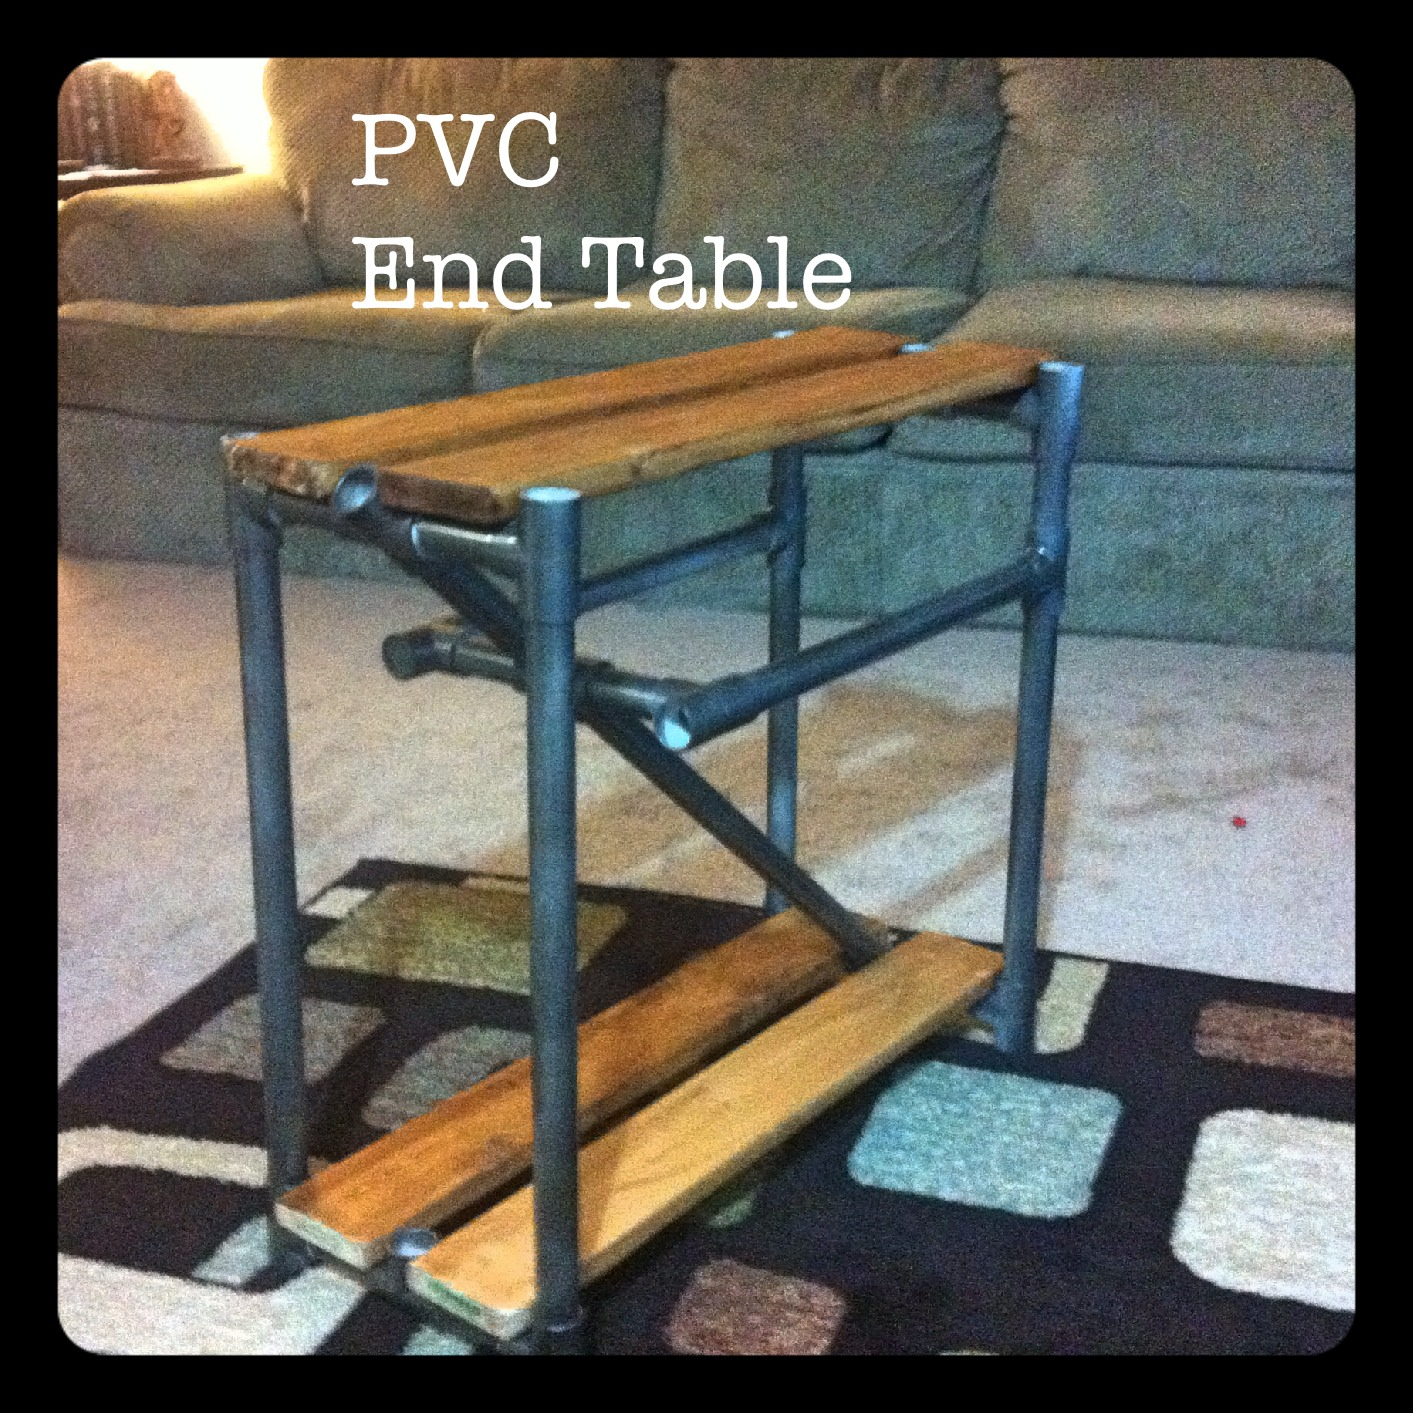 PVC End Table